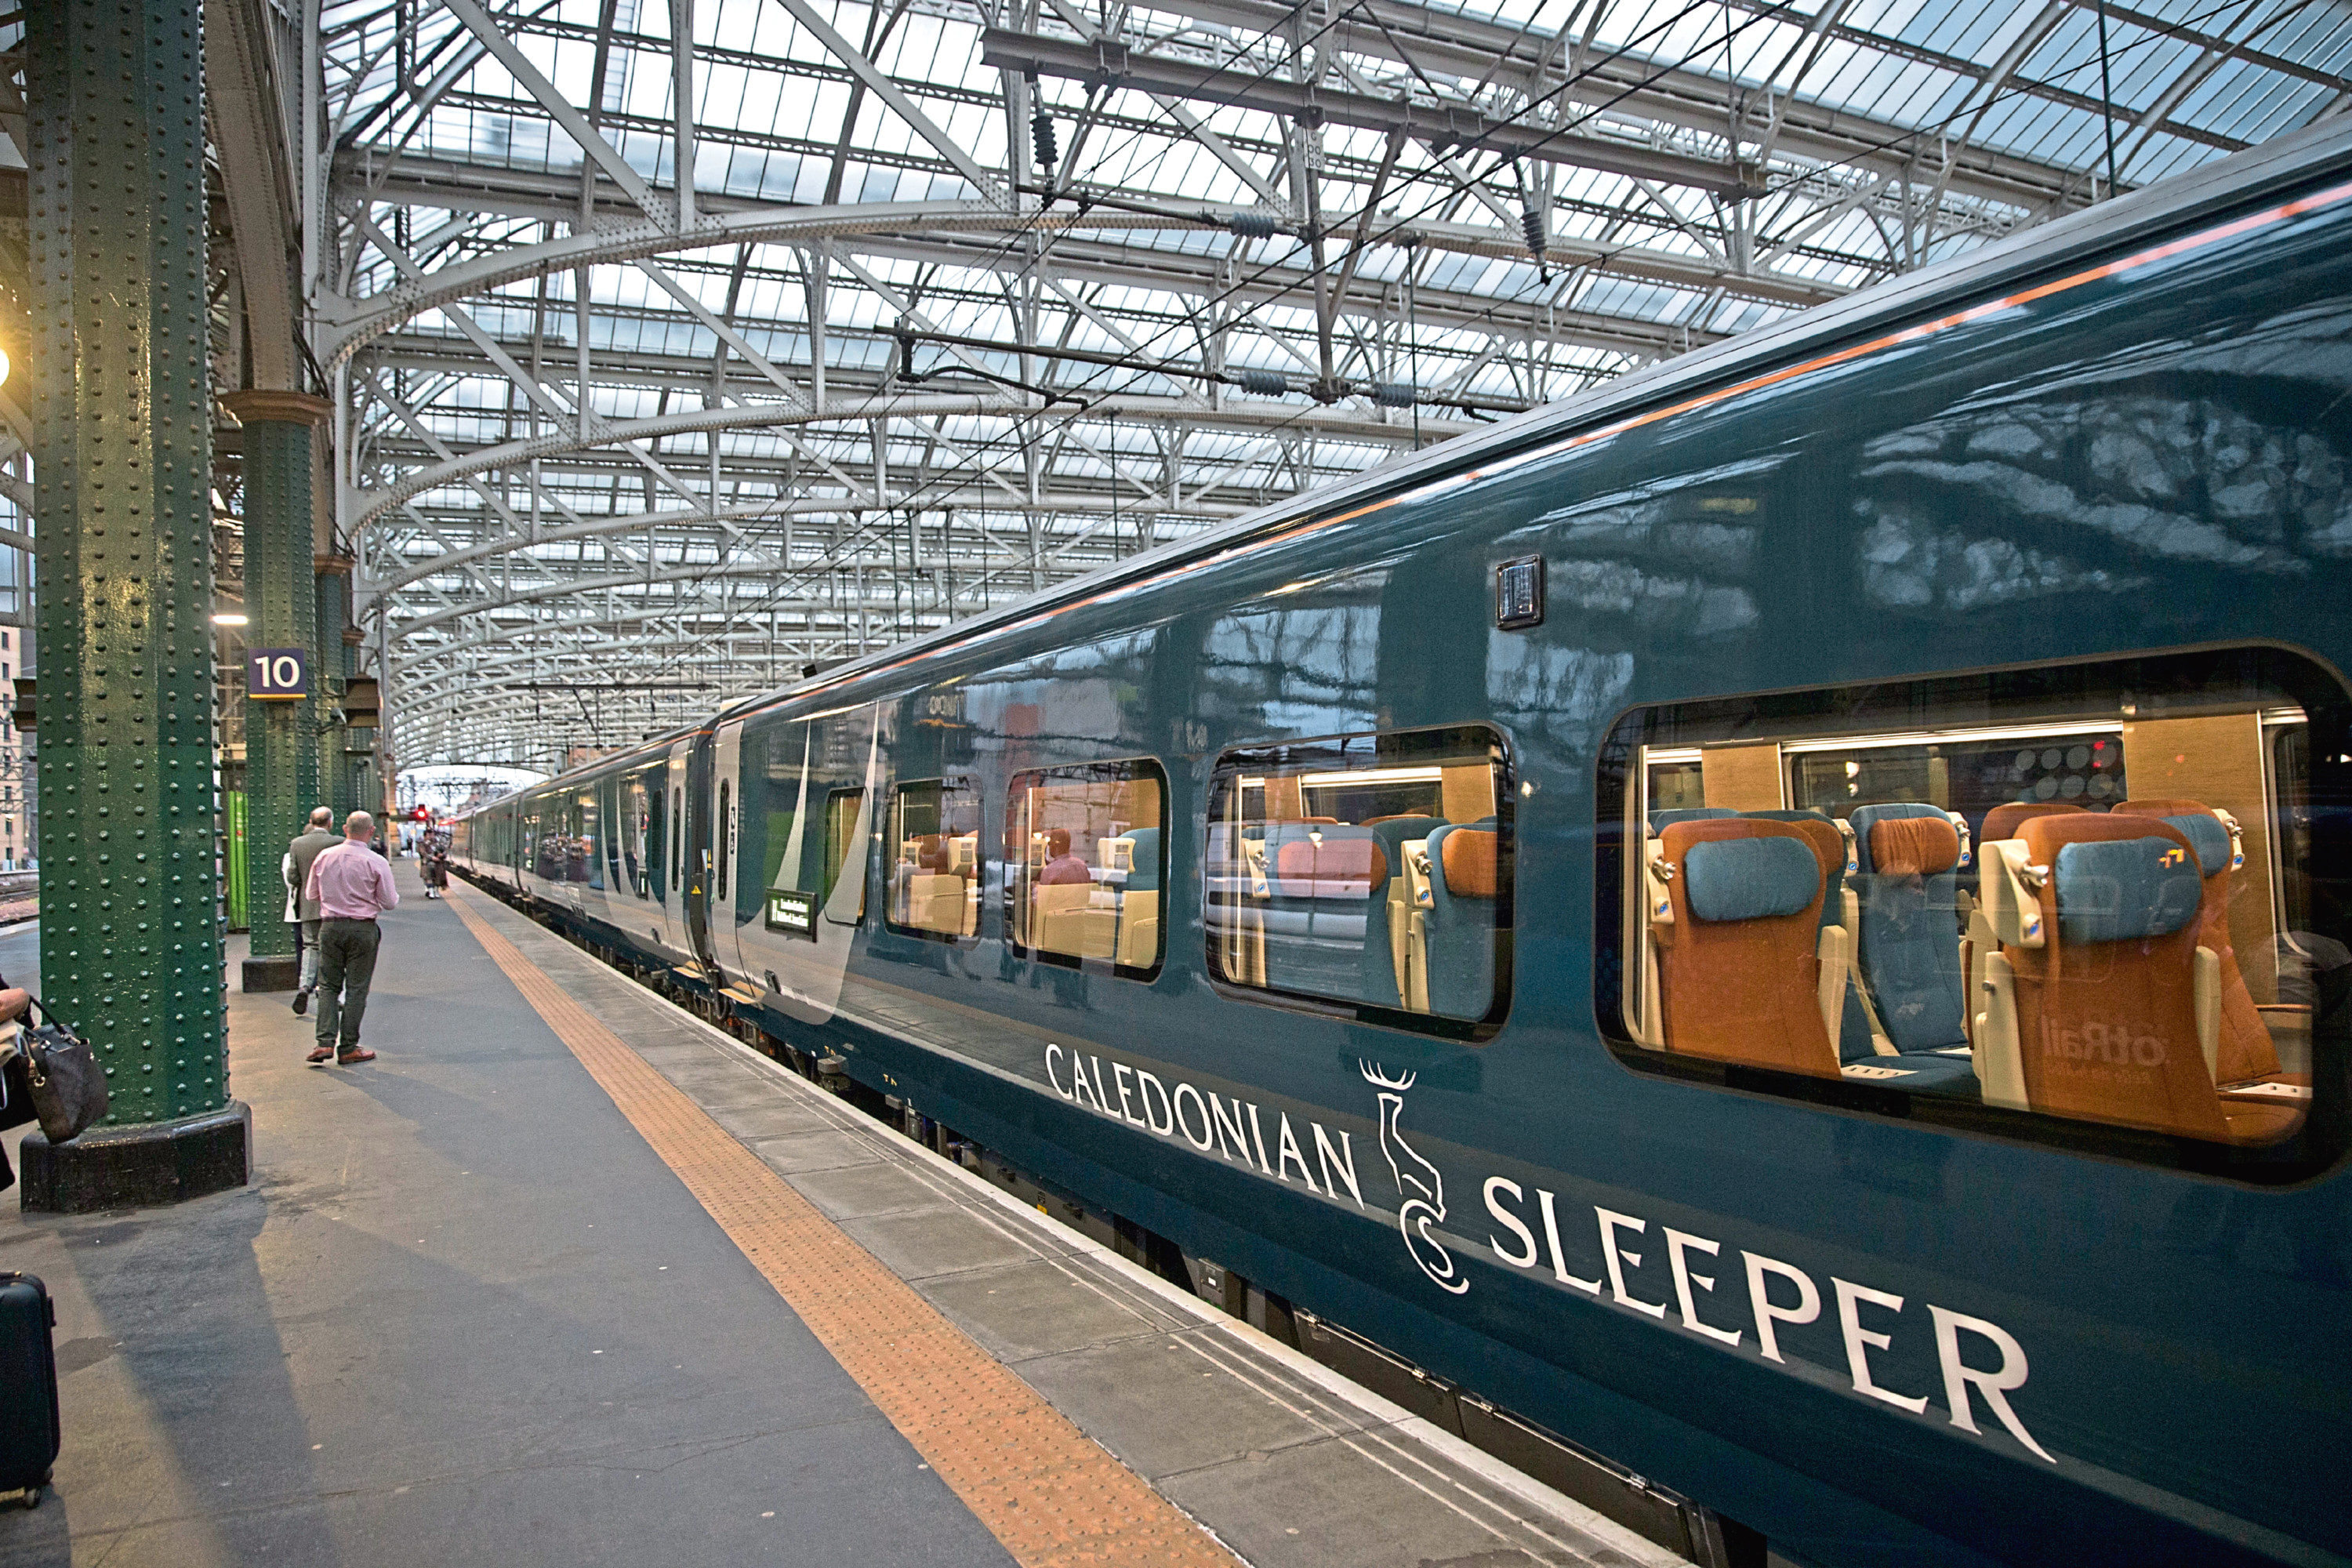 MP Andrew Bowie hopes the Caledonian Sleeper service between Aberdeen and London will restart soon